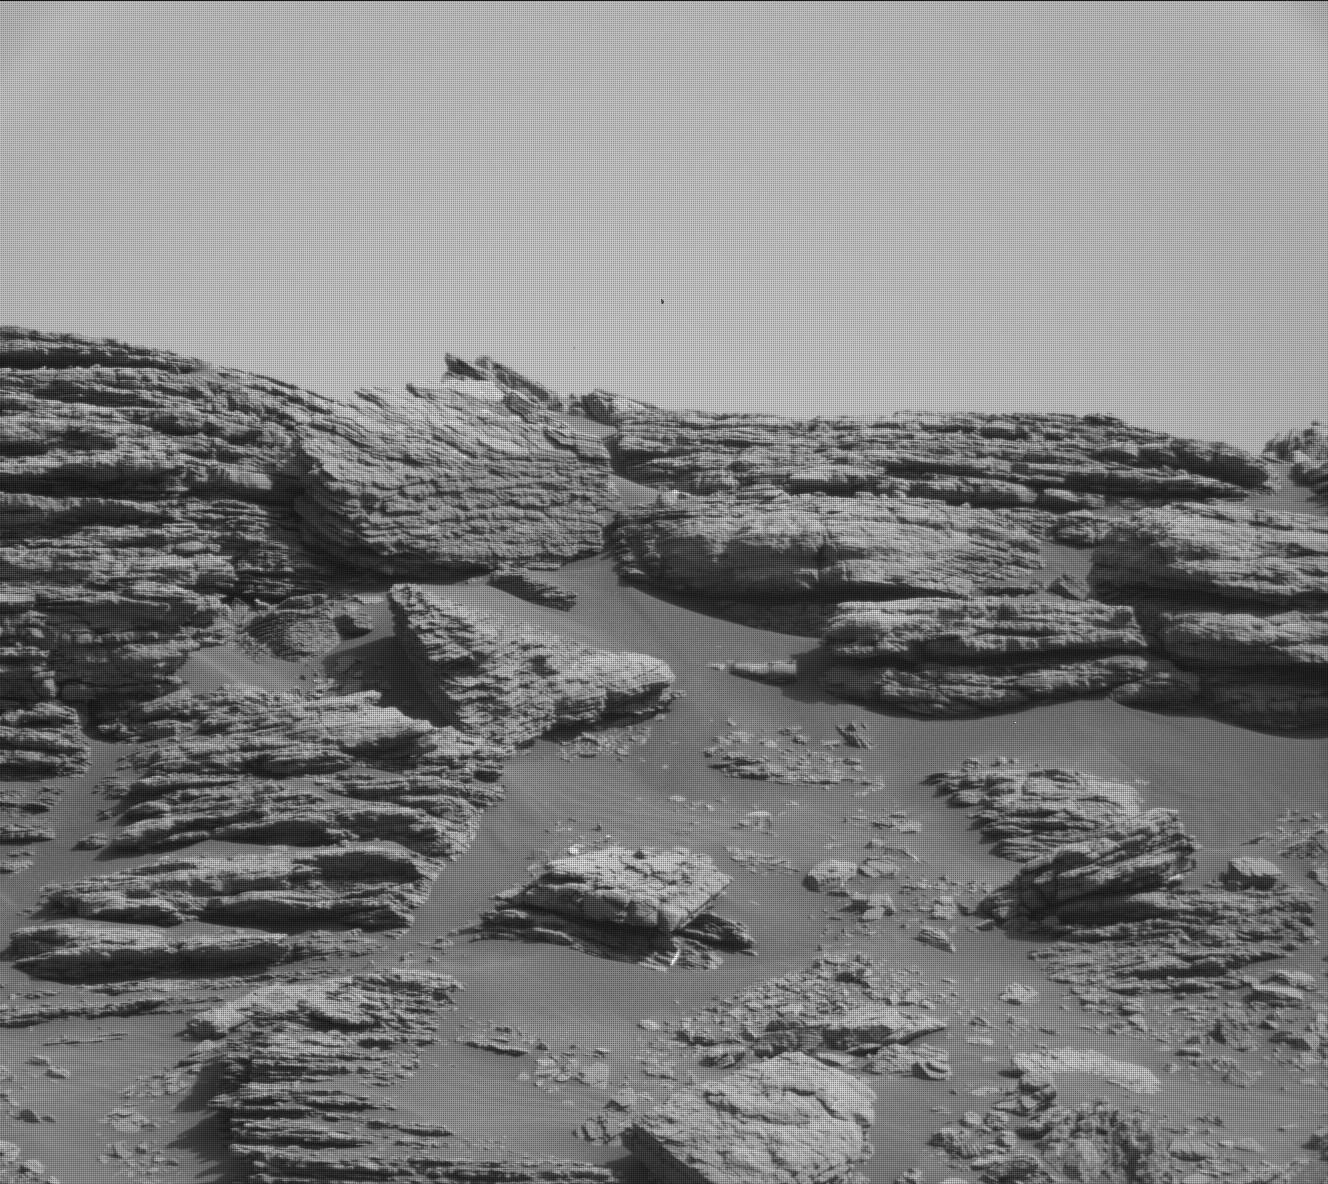 Nasa's Mars rover Curiosity acquired this image using its Mast Camera (Mastcam) on Sol 2474